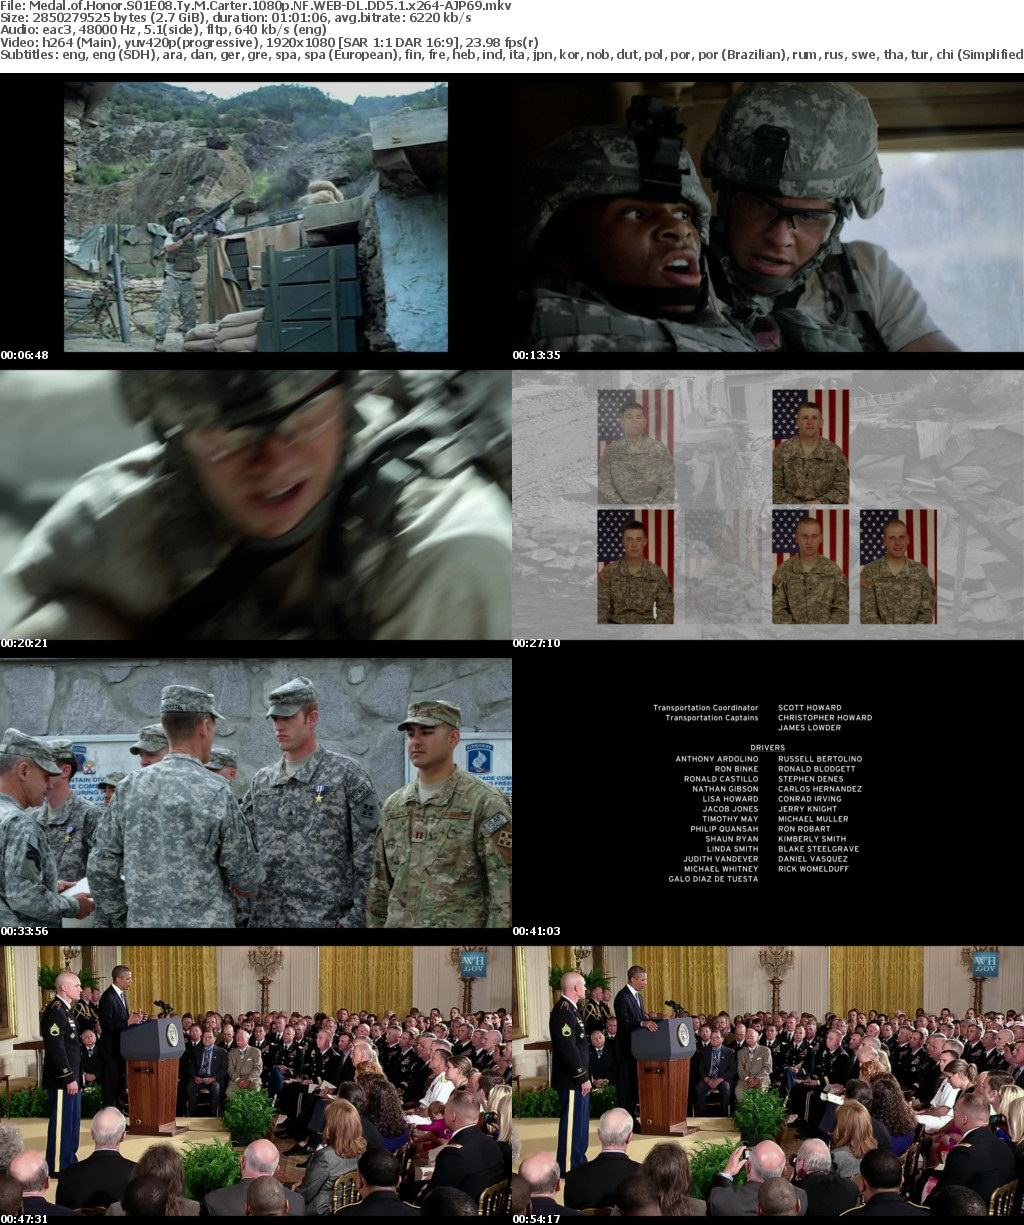 Medal of Honor S01 1080p NF WEB-DL DDP5 1 x264-AJP69